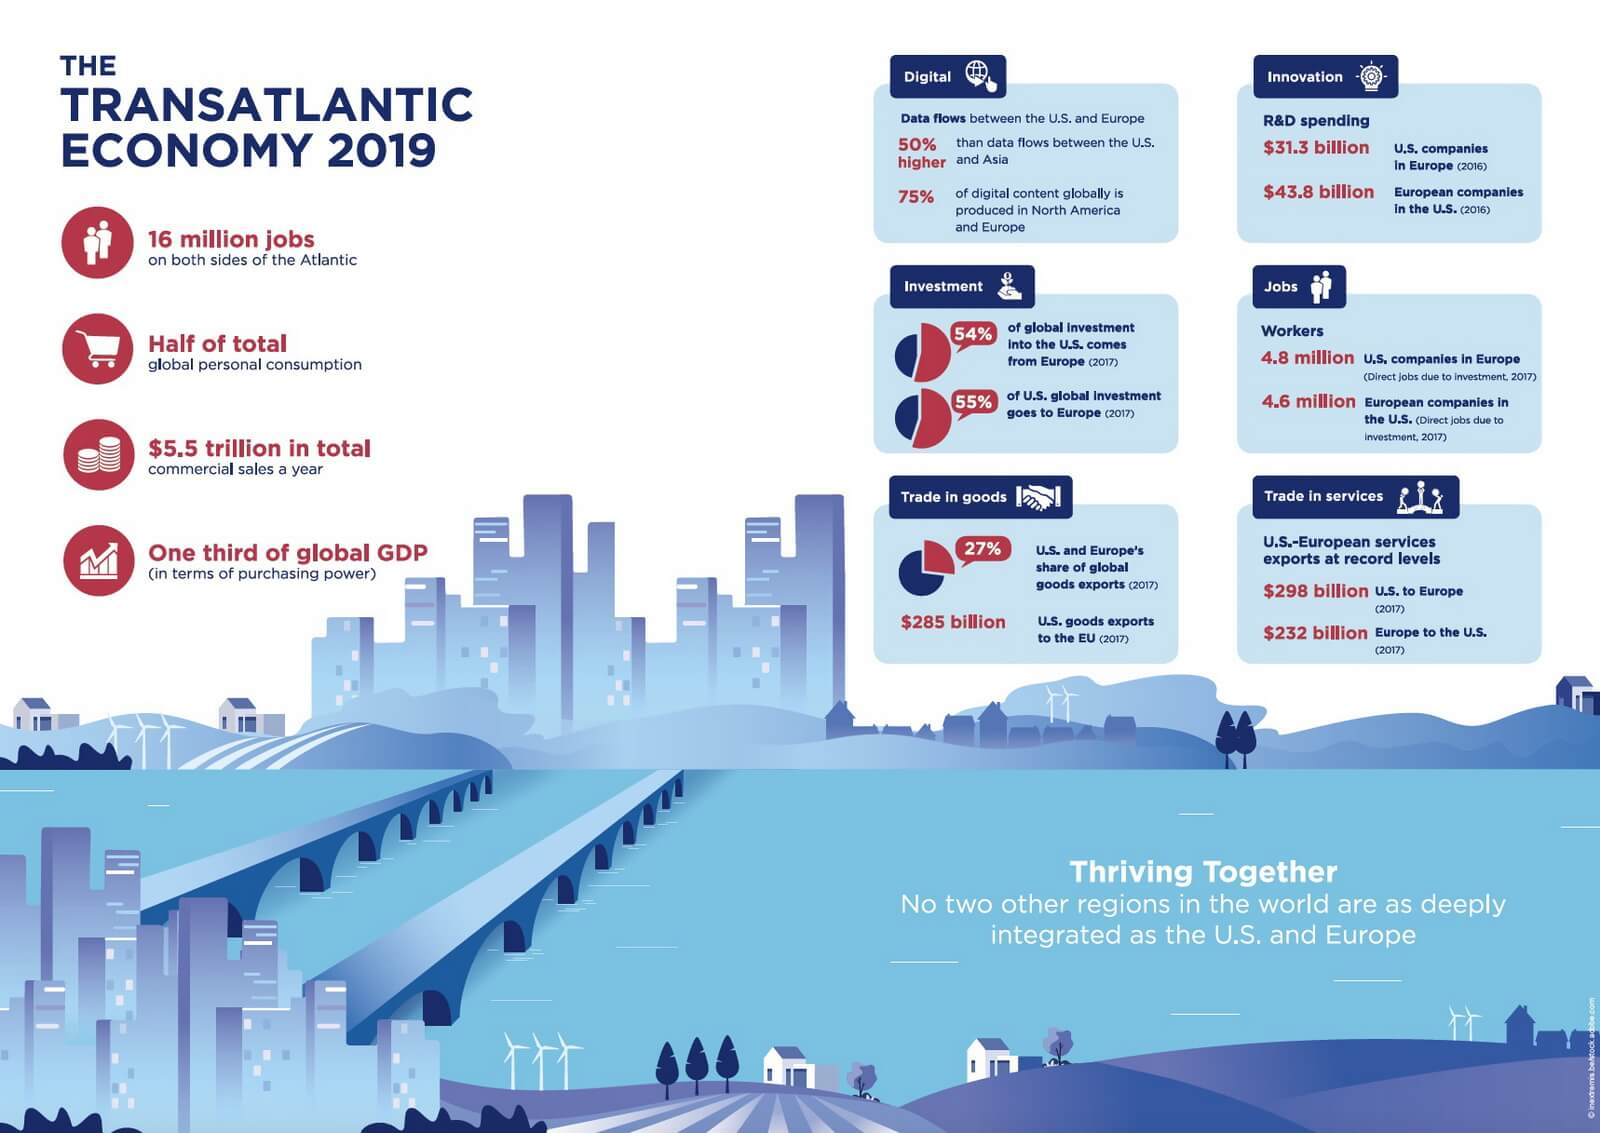 Transatlantic Economy 2019 key findings